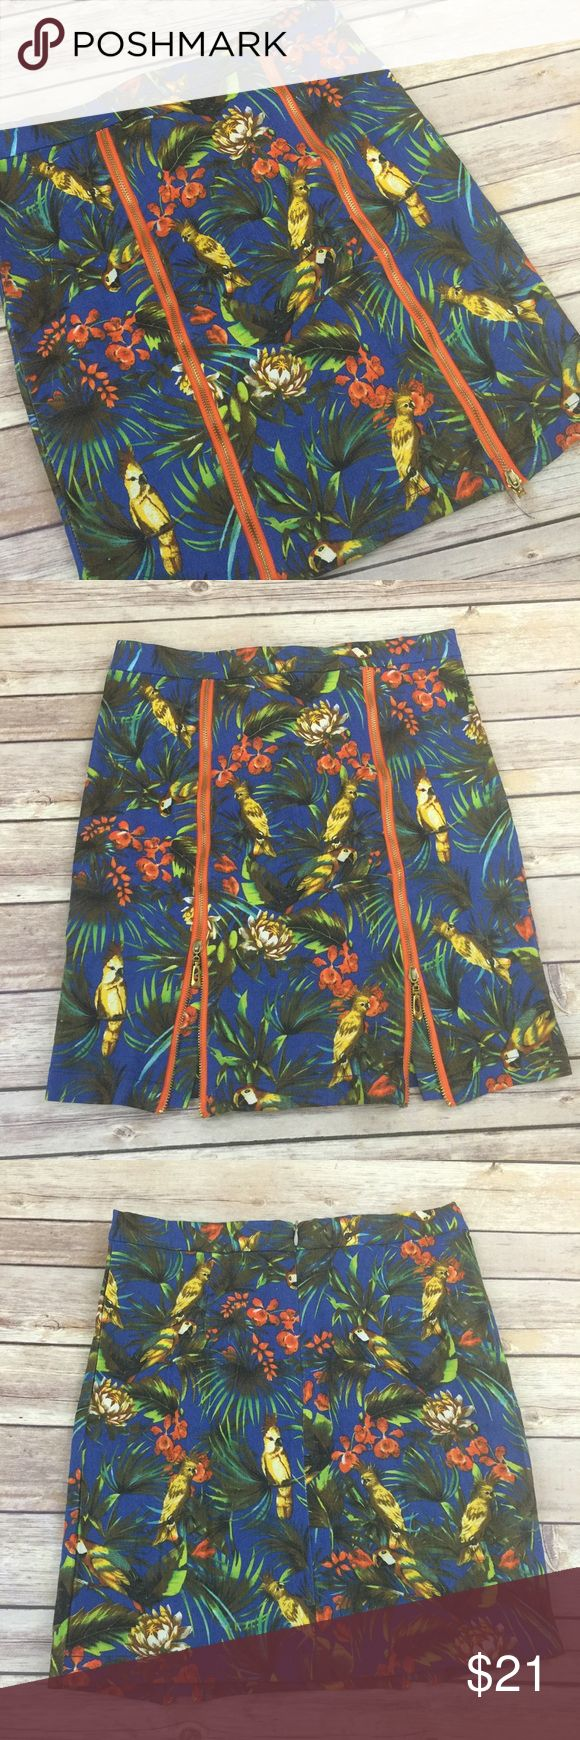 Tropical Bird Pencil Skirt Mini Zipper Slits Worn once. Stretchy easy to move in. Comfortable.  The zippers can unzip as much or little as you want.  This is a denim skirt. Great colors for bringing the fun into fall. the lift Skirts